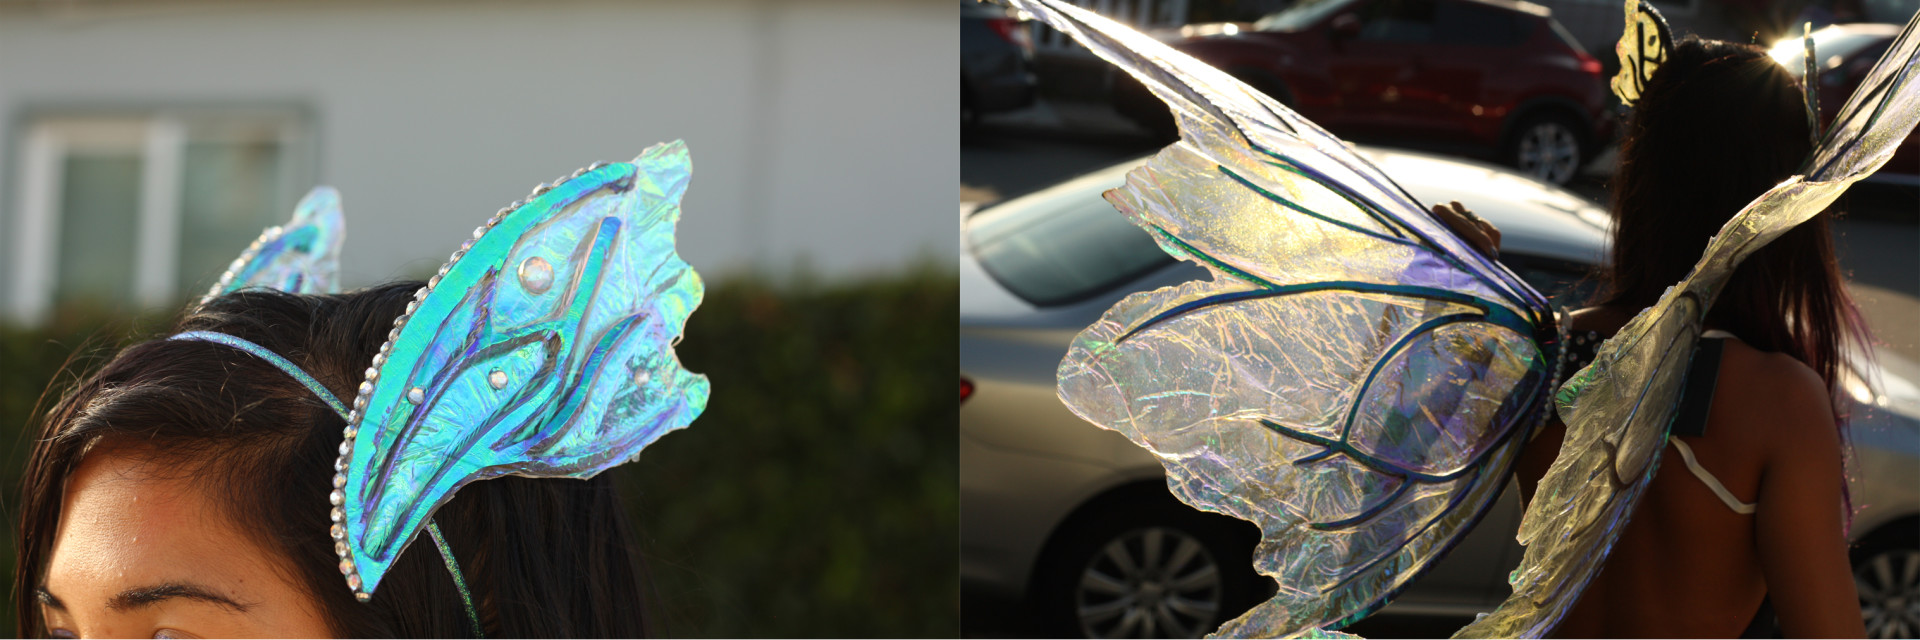 DIY Fairy Wings Example 1